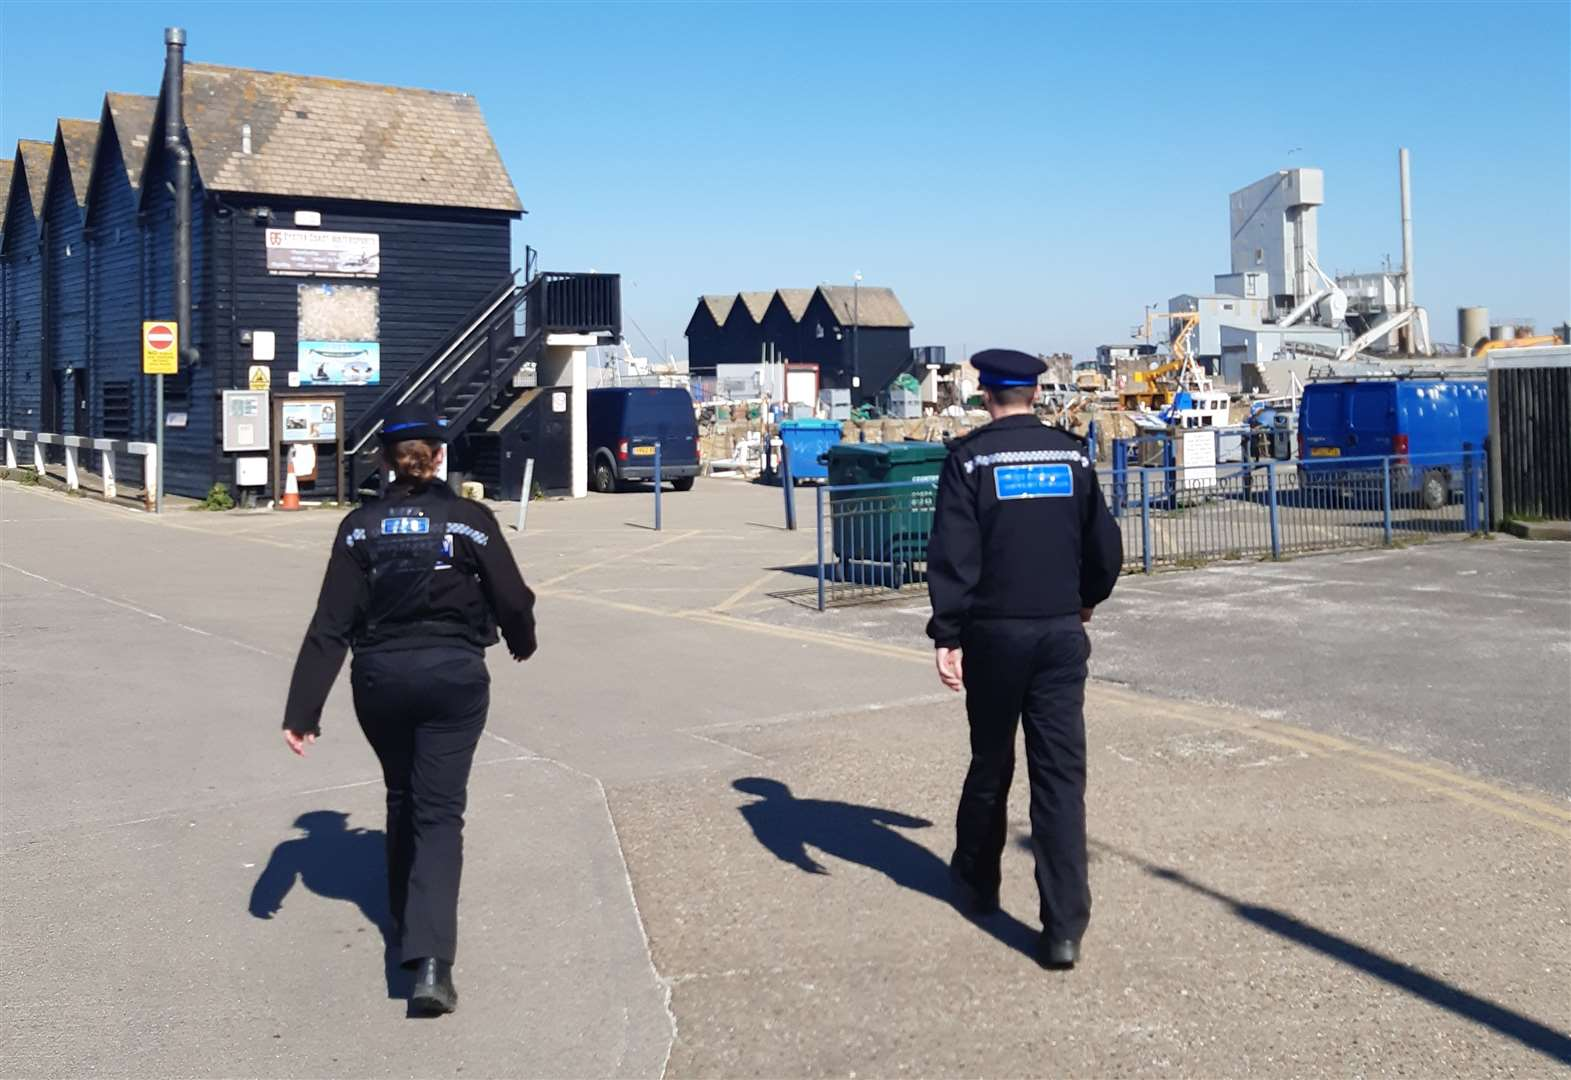 Police out on patrol in Whitstable during lockdown earlier this year